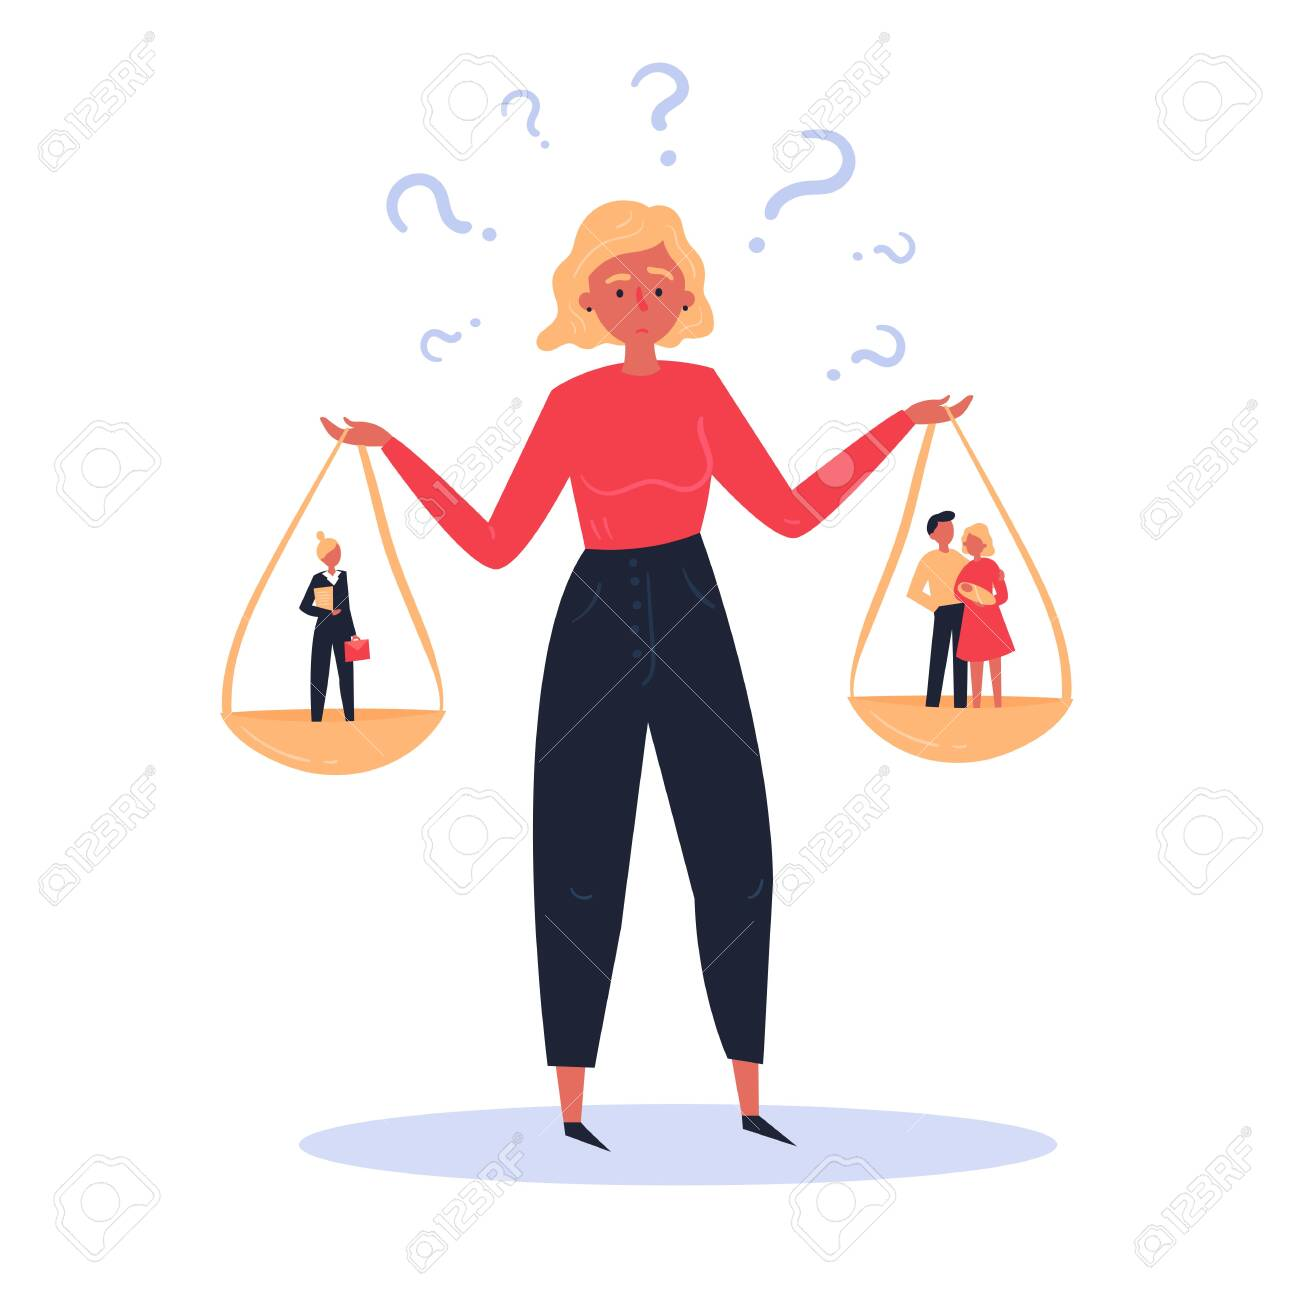 Concept illustration of hard choice of a woman between career and family. Scales in hands. On one hand is happy young family of man and woman, on the other woman in business suit and briefcase. - 122680048